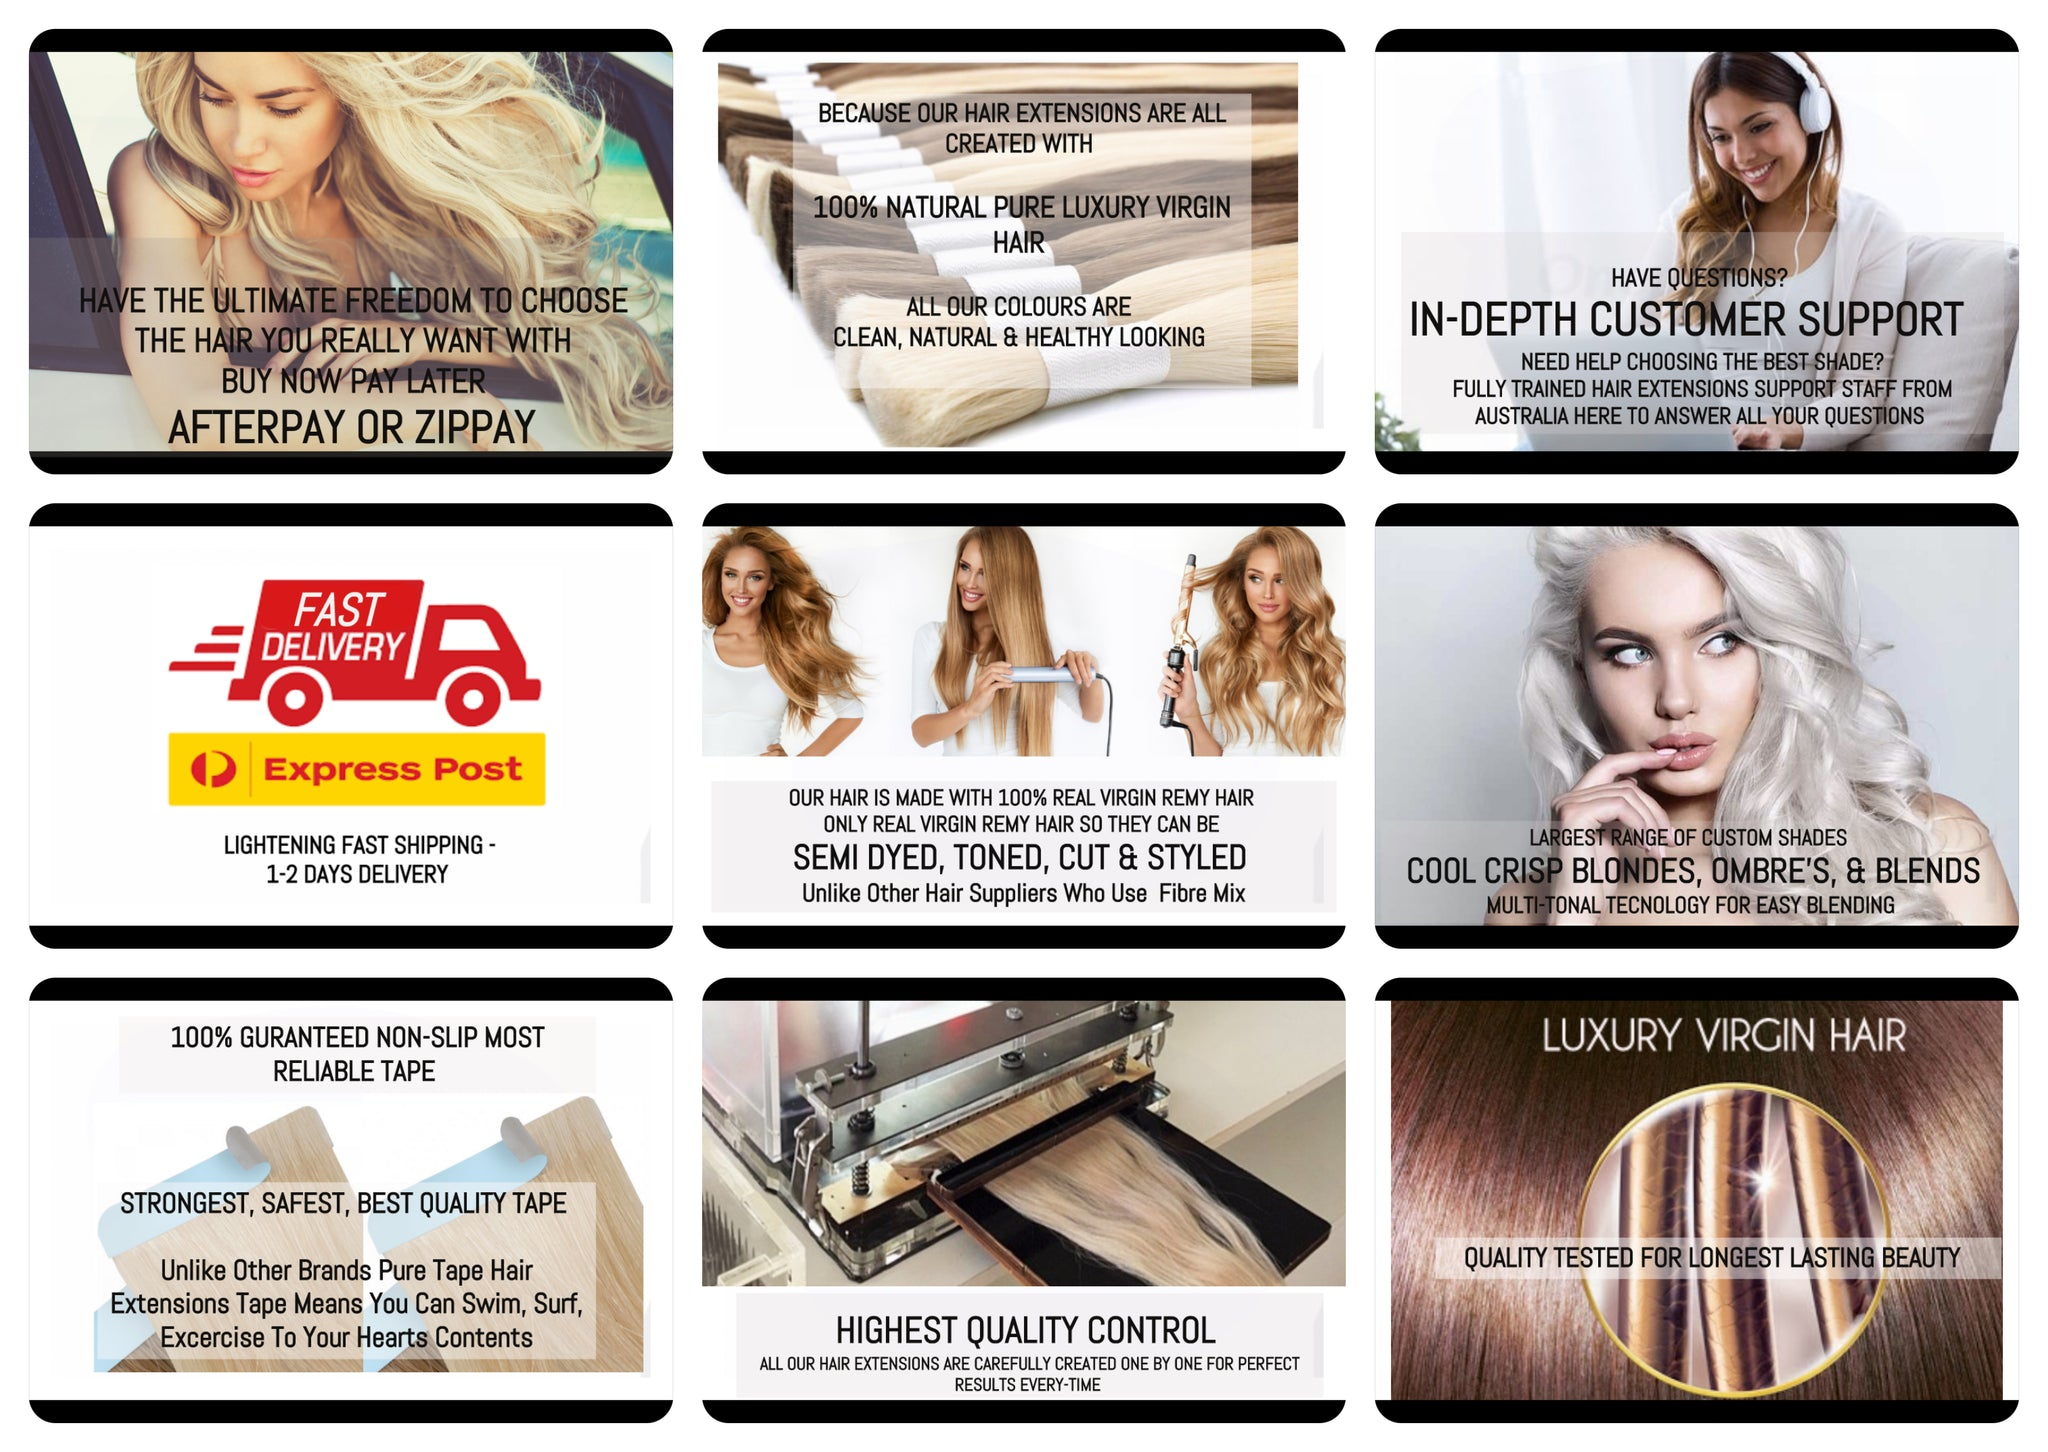 world's highest quality hair extensions